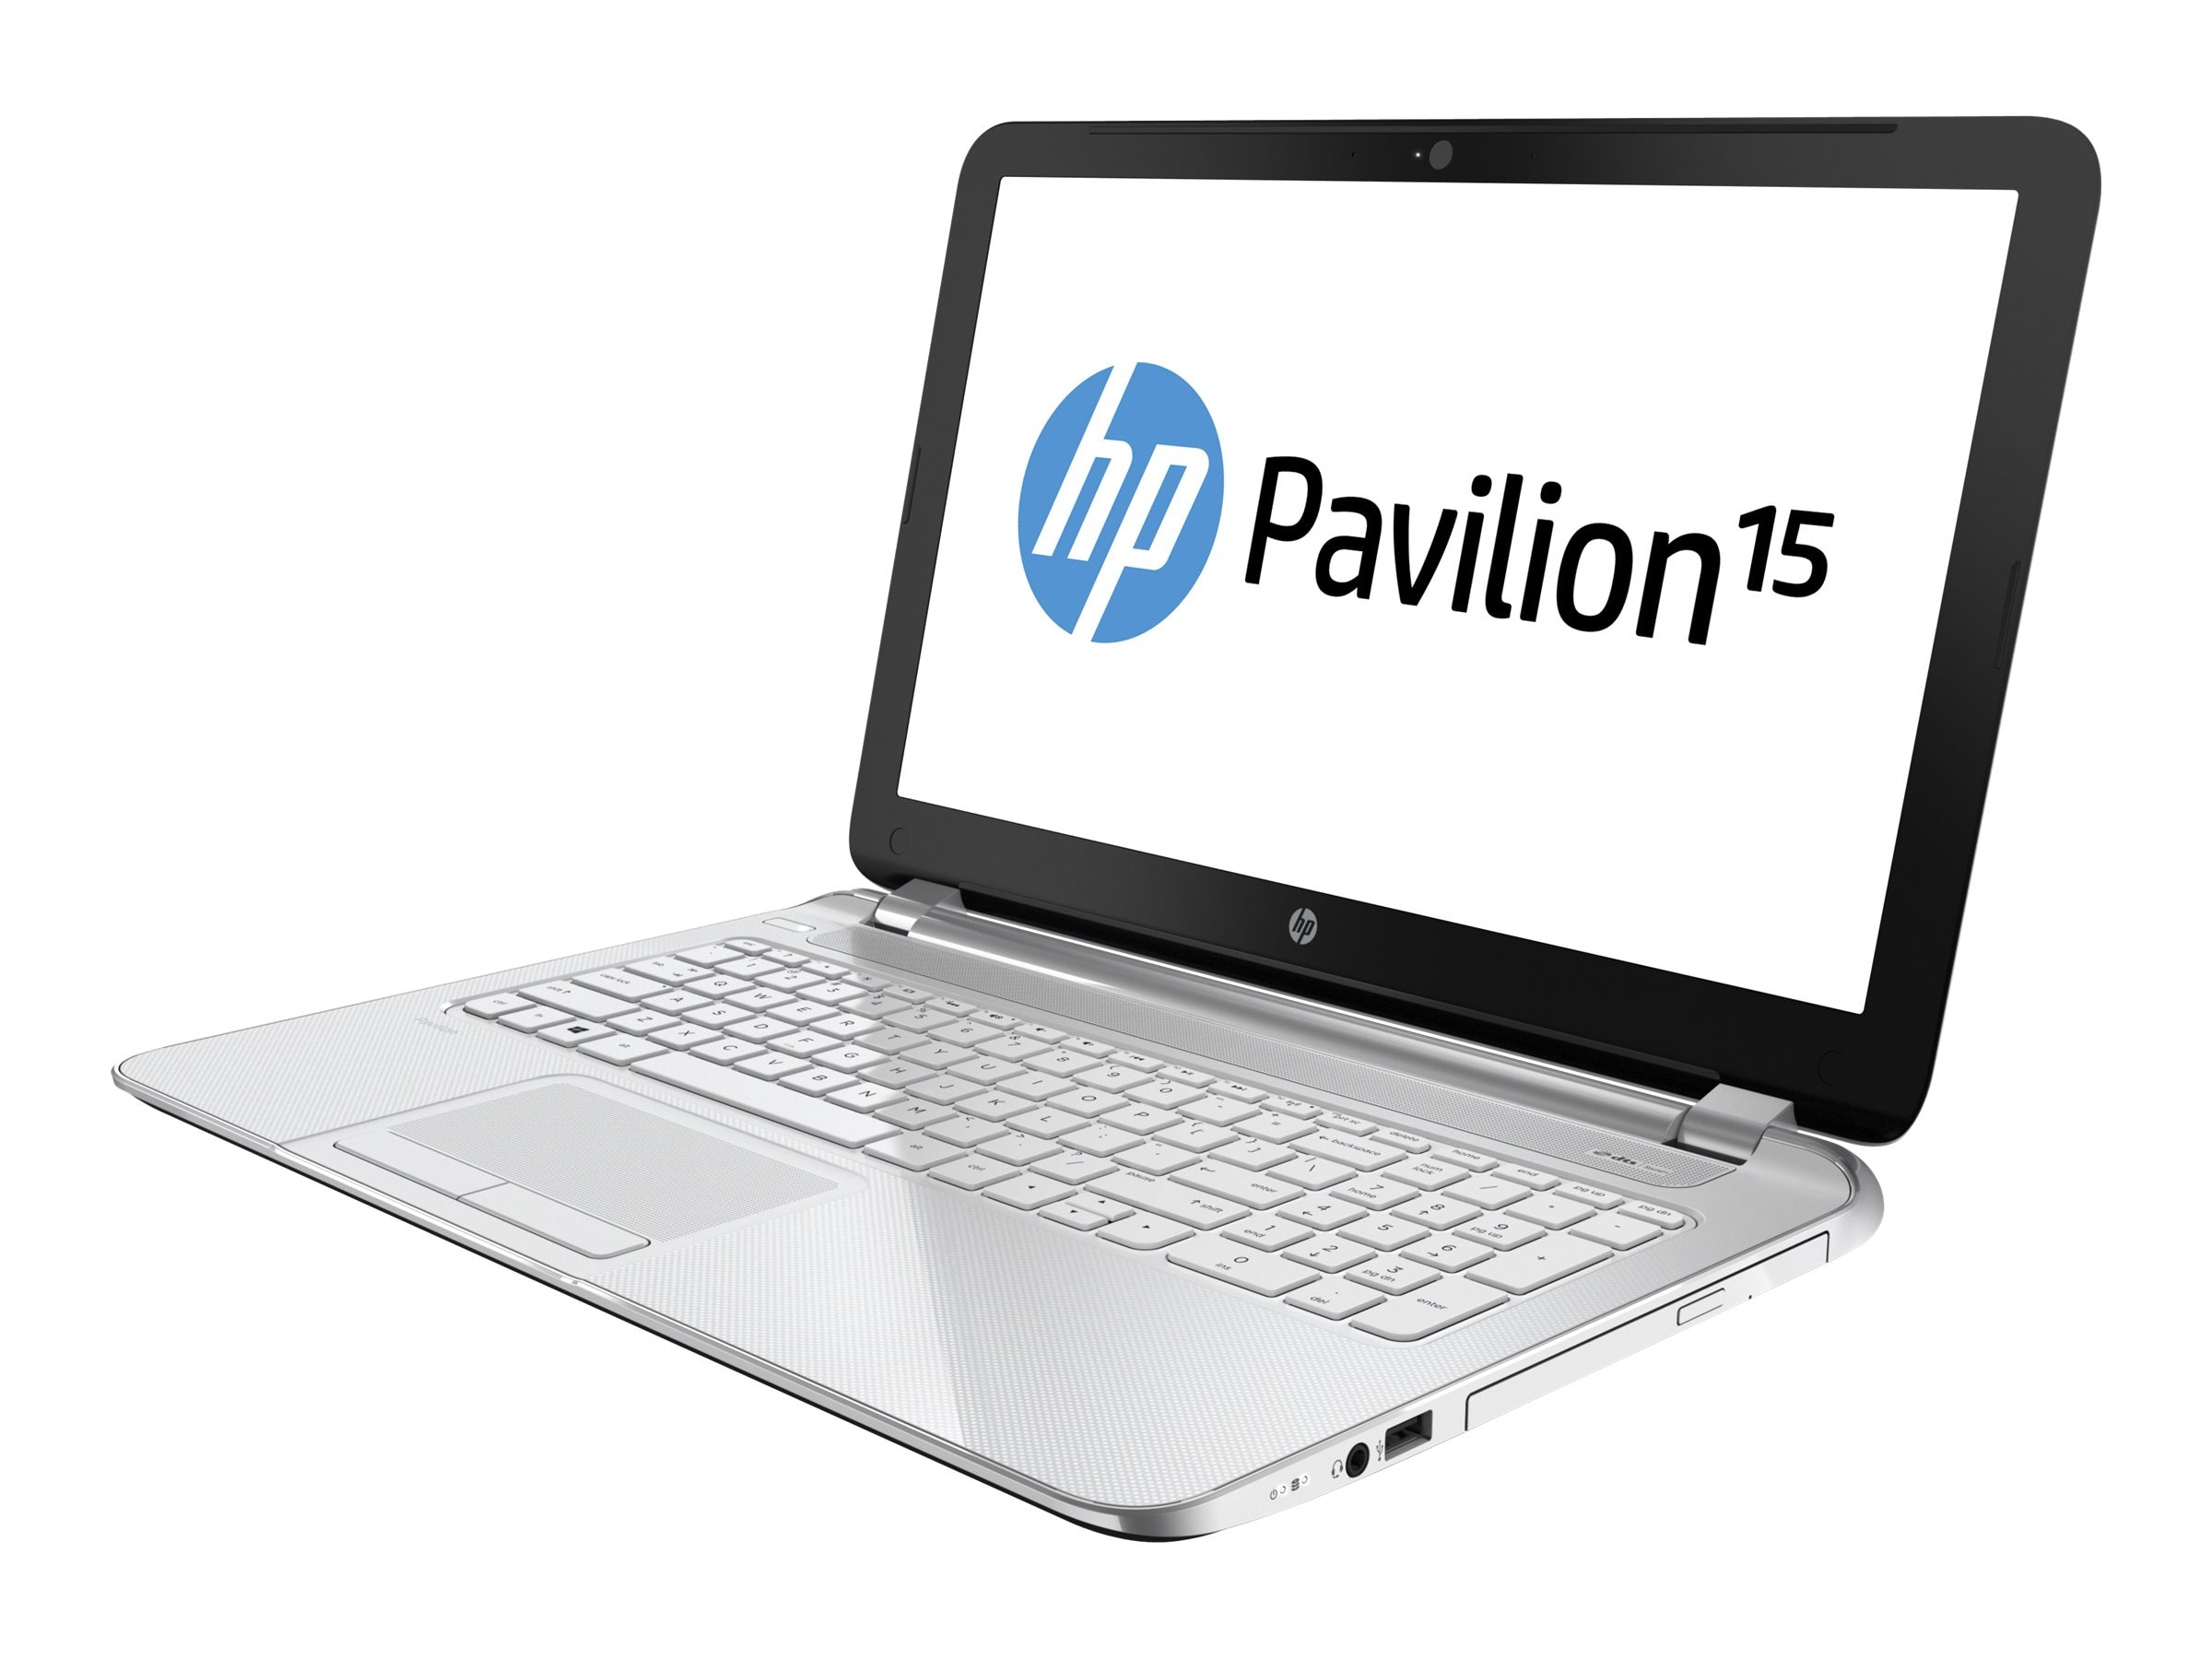 HP Pavilion 15-N207nr AMD QC A6-5200 2.0GHz 8GB 750GB DVD SM bgn NIC BT WC 4C HD8400 15.6 HD W8.1-64, F5Y81UA#ABA